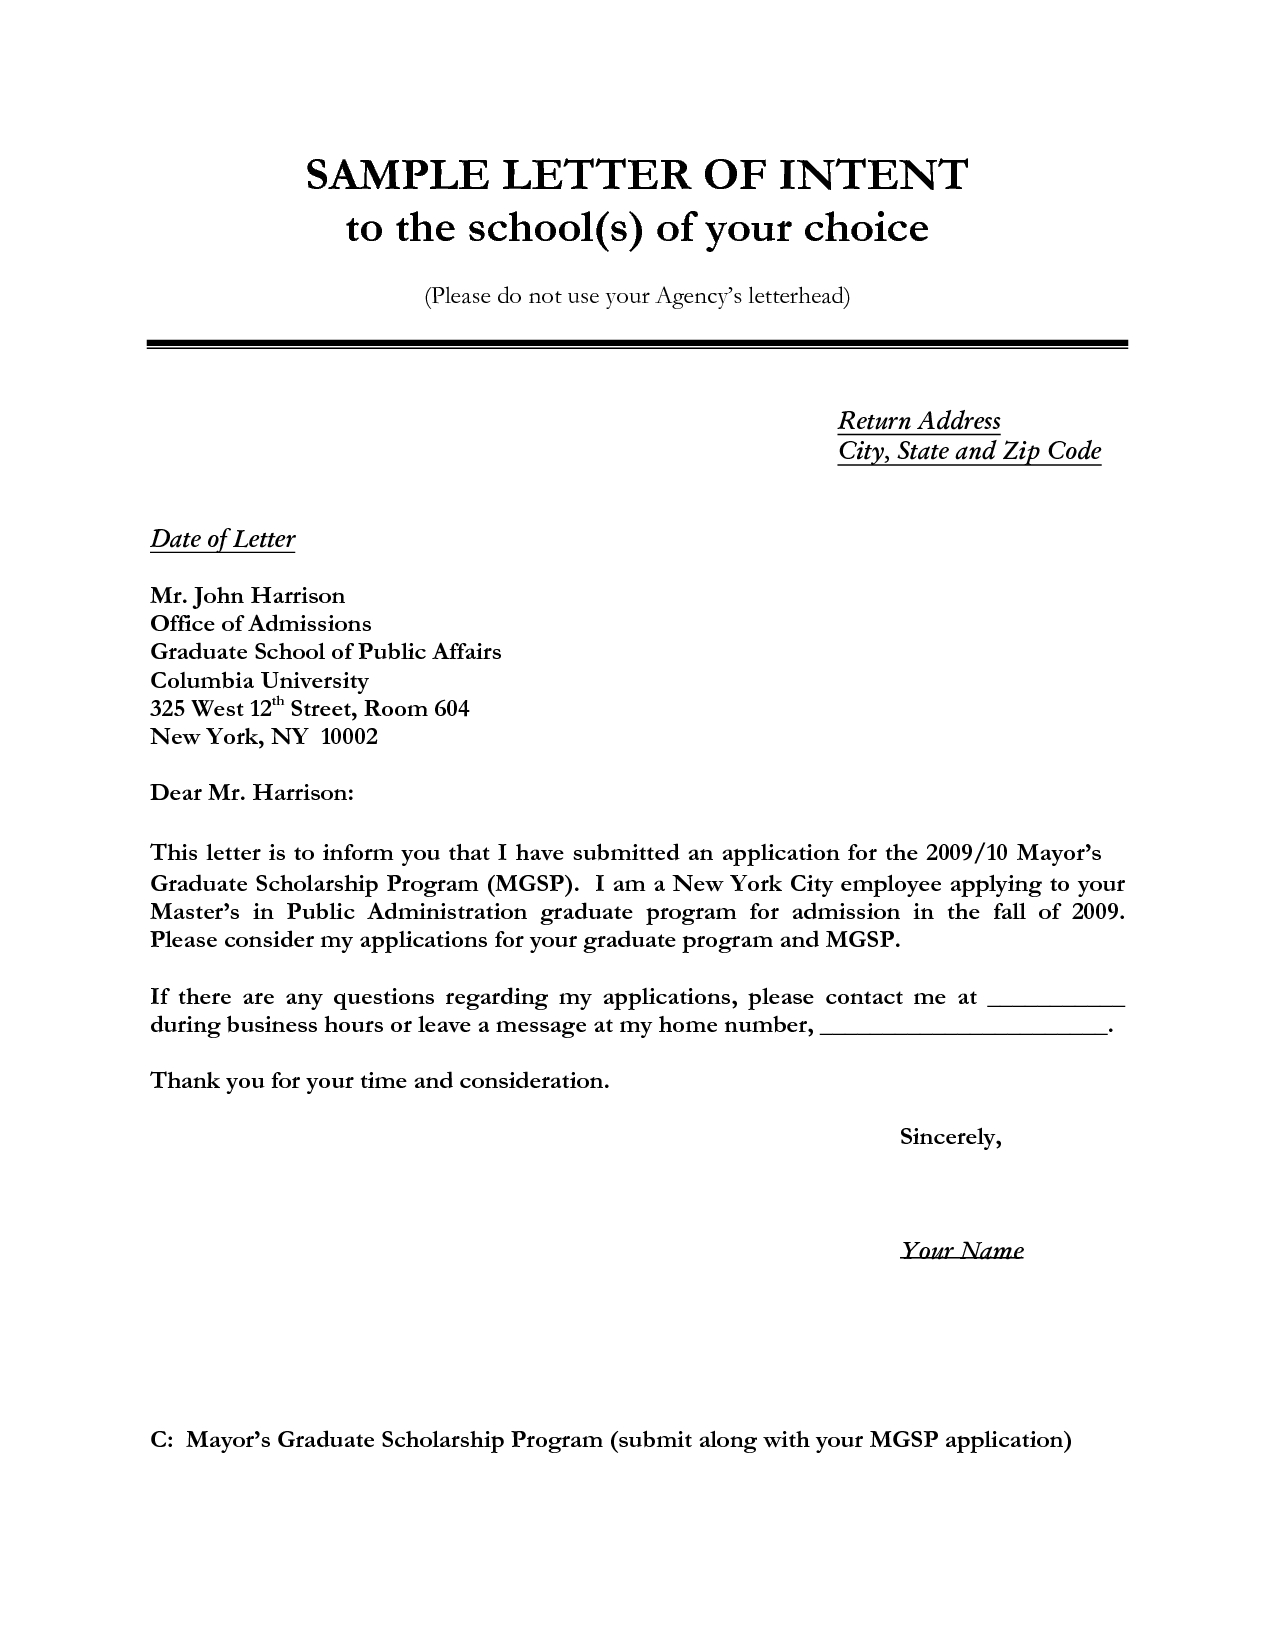 Free Rental Reference Letter Template - Letter Of Intent Sample